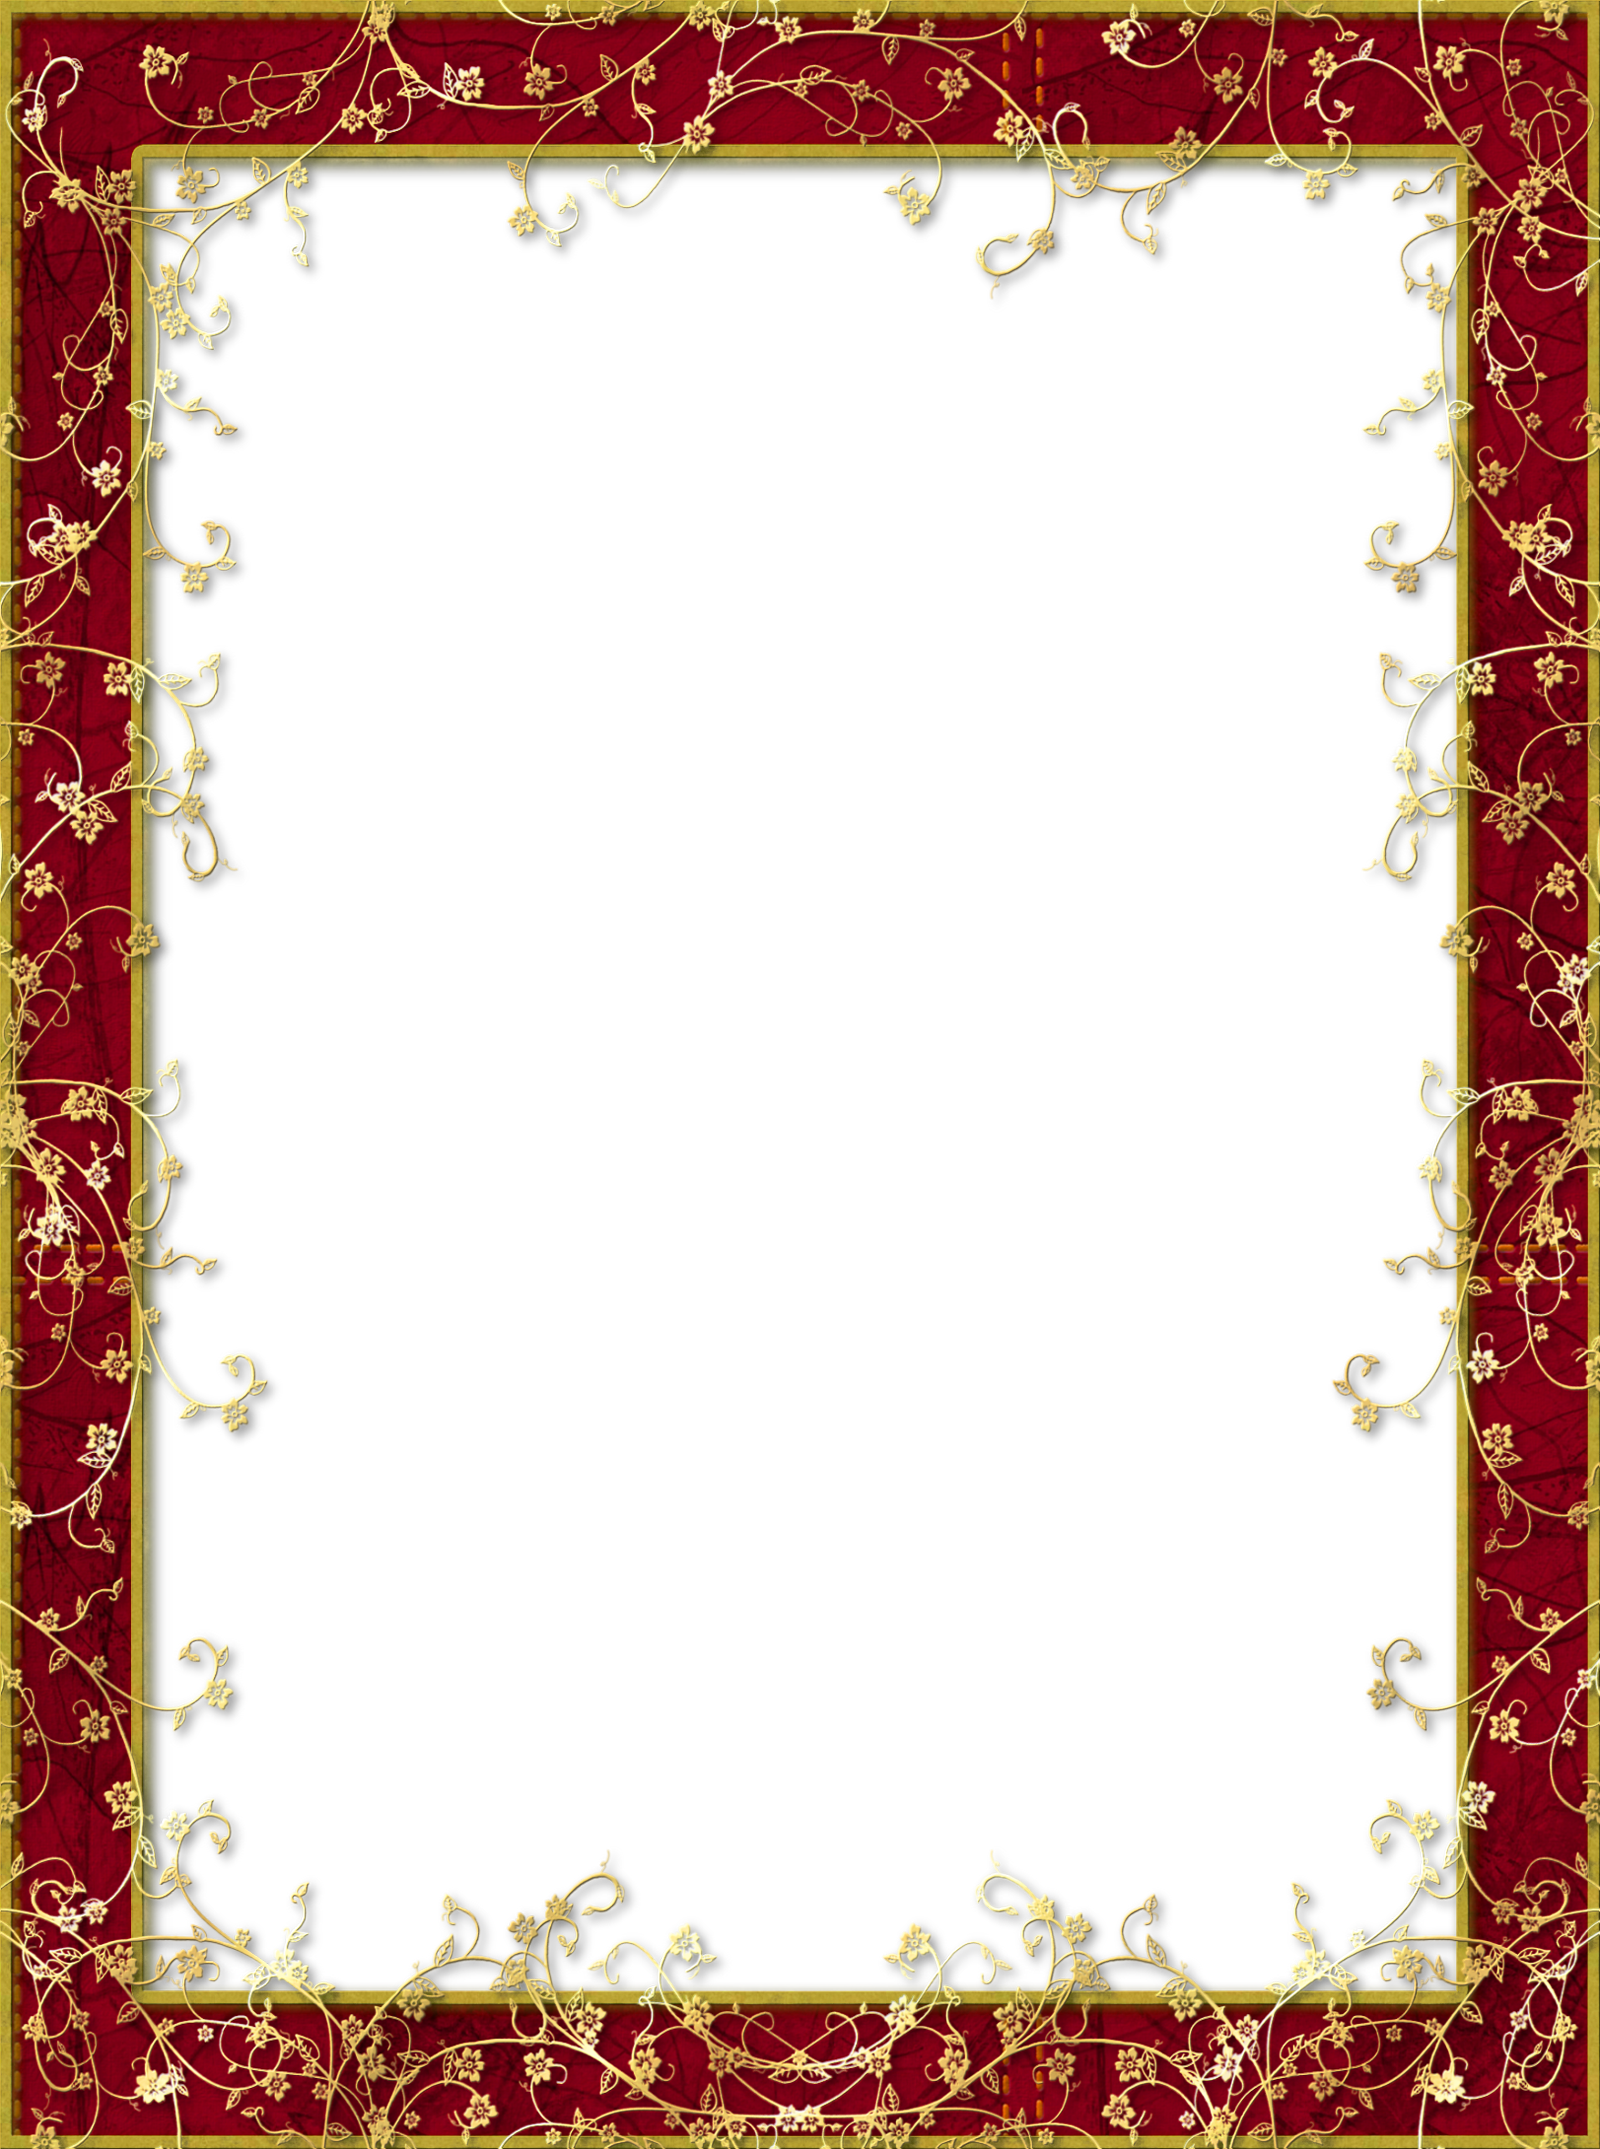 Photo background frame clipart picture freeuse stock Pin by vuppala viswanadh on DIY and crafts   Frame, Frame ... picture freeuse stock